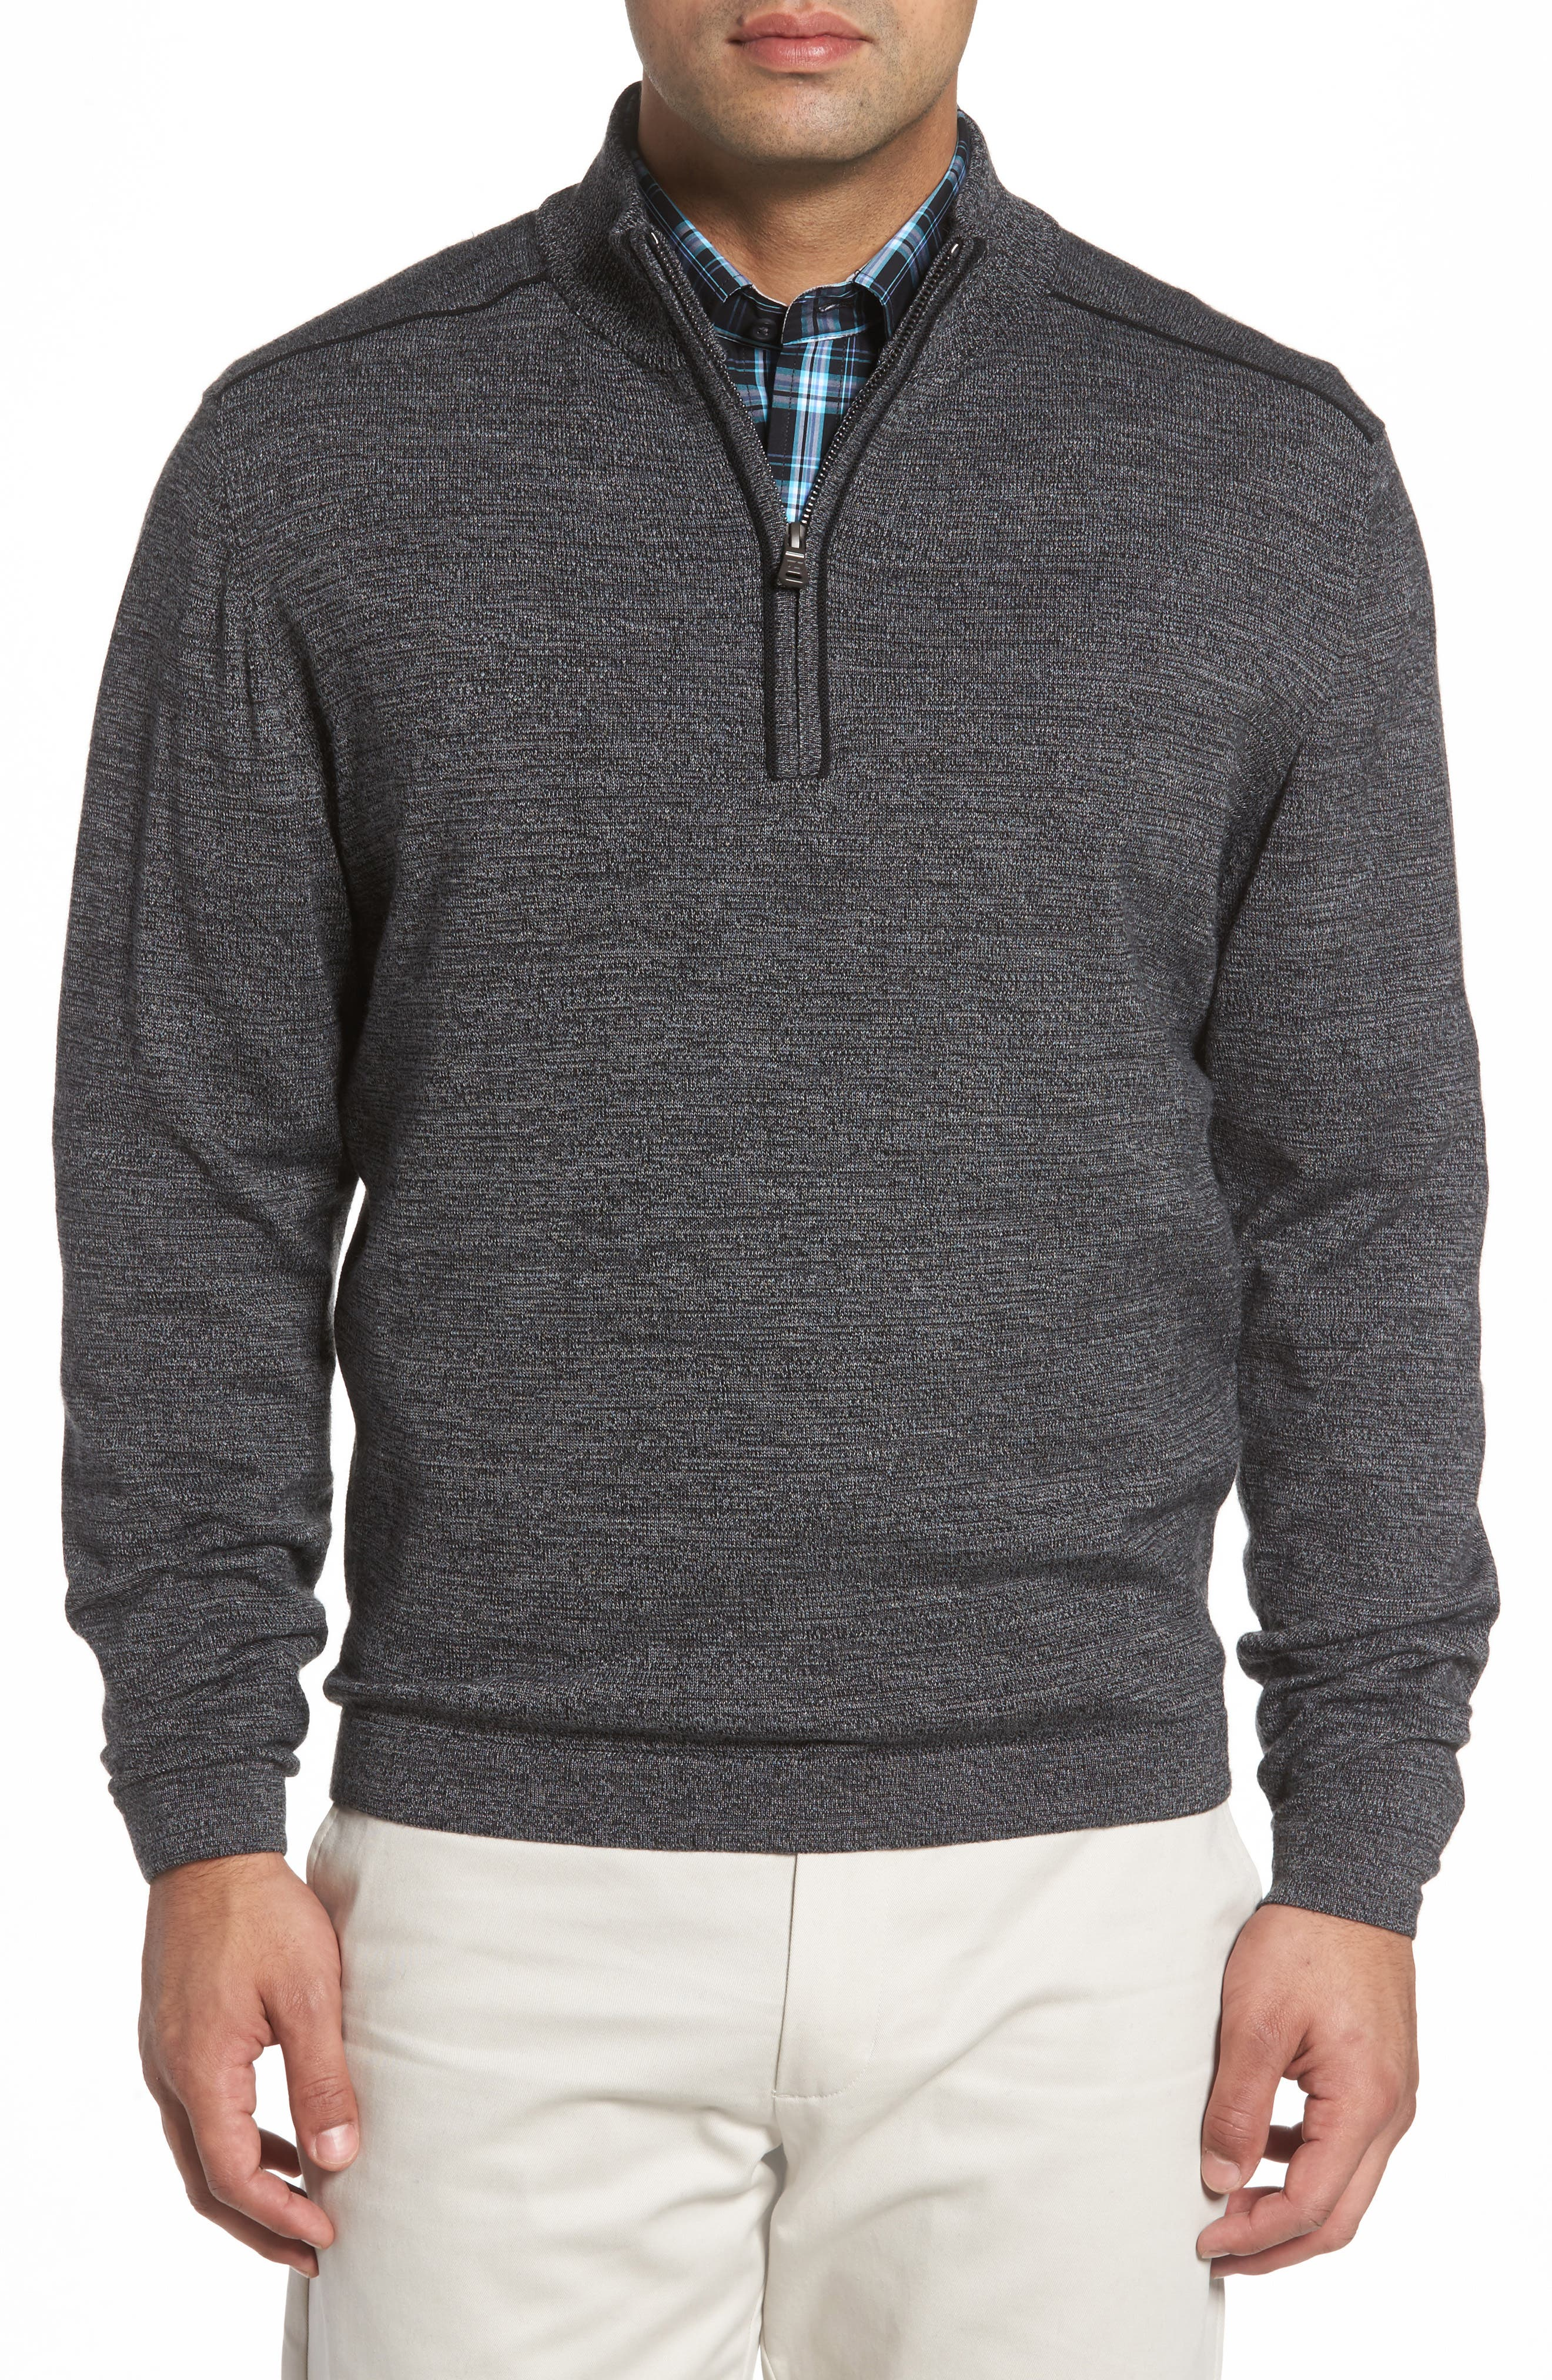 Henry Quarter-Zip Pullover Sweater,                             Main thumbnail 1, color,                             001